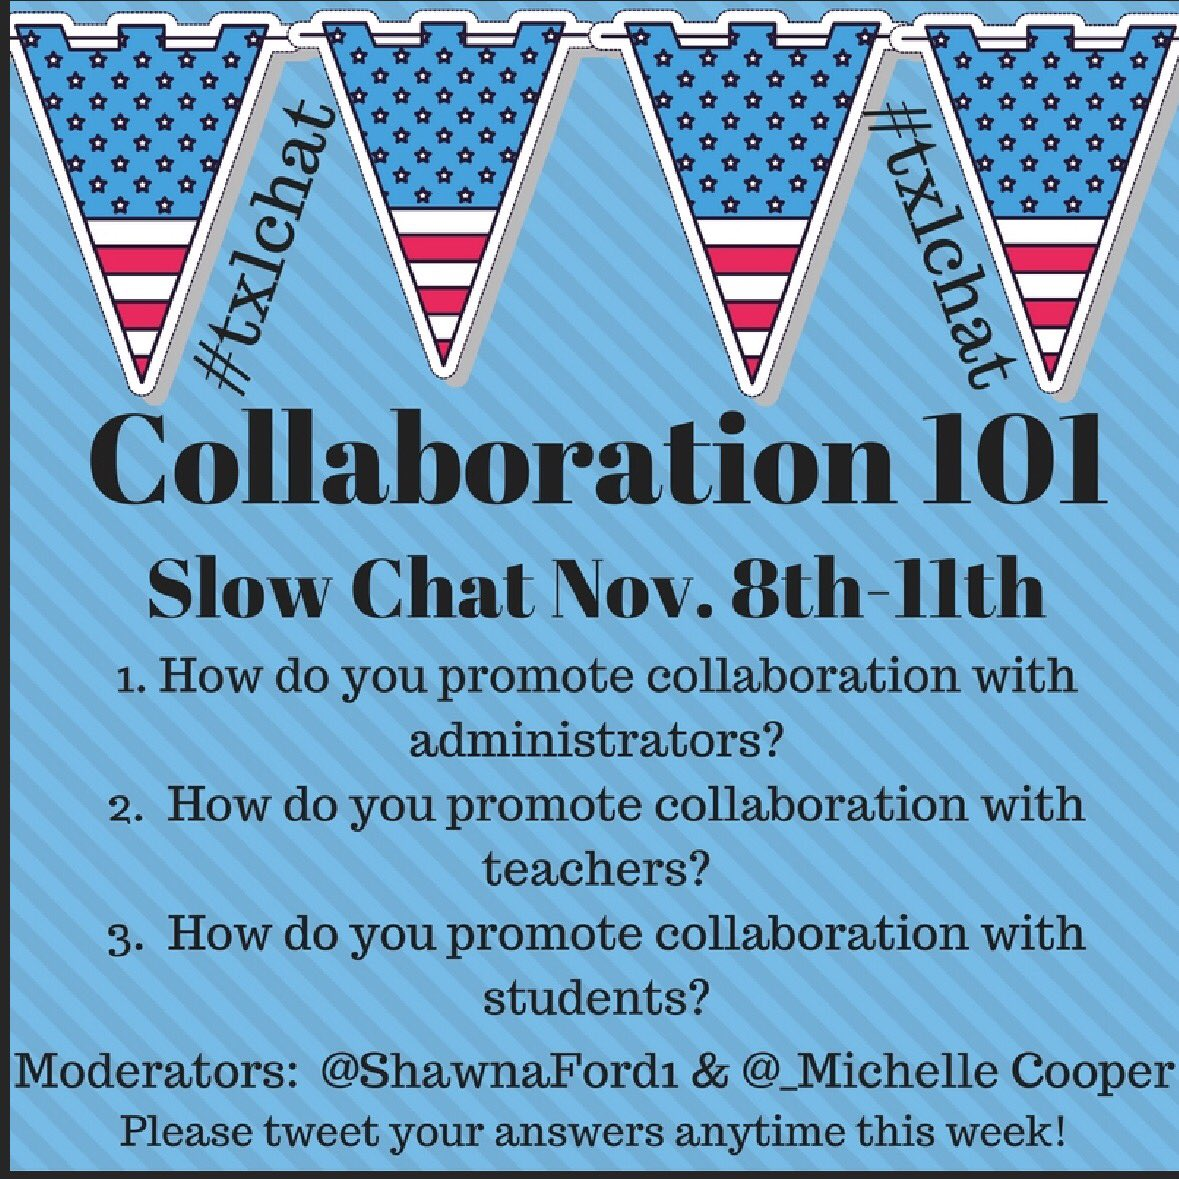 Join us for our first #Txlchat slow chat! Let us know how you collaborate with teachers, admin & students! #tlchat https://t.co/XkLZDKGx4x